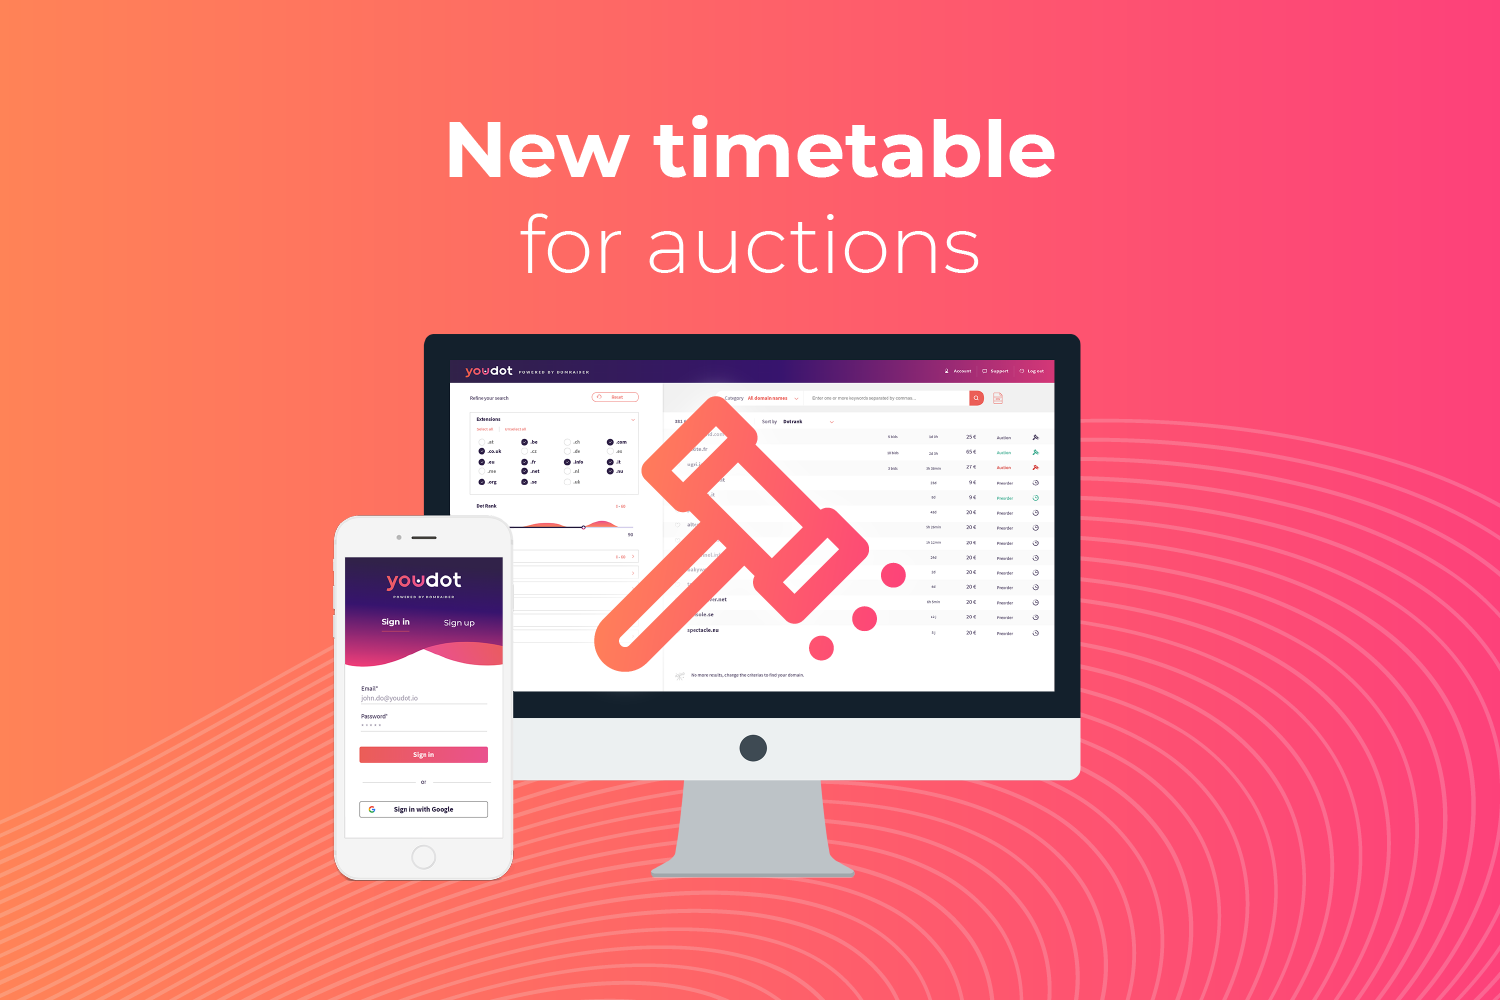 New timetable for auctions on the platform